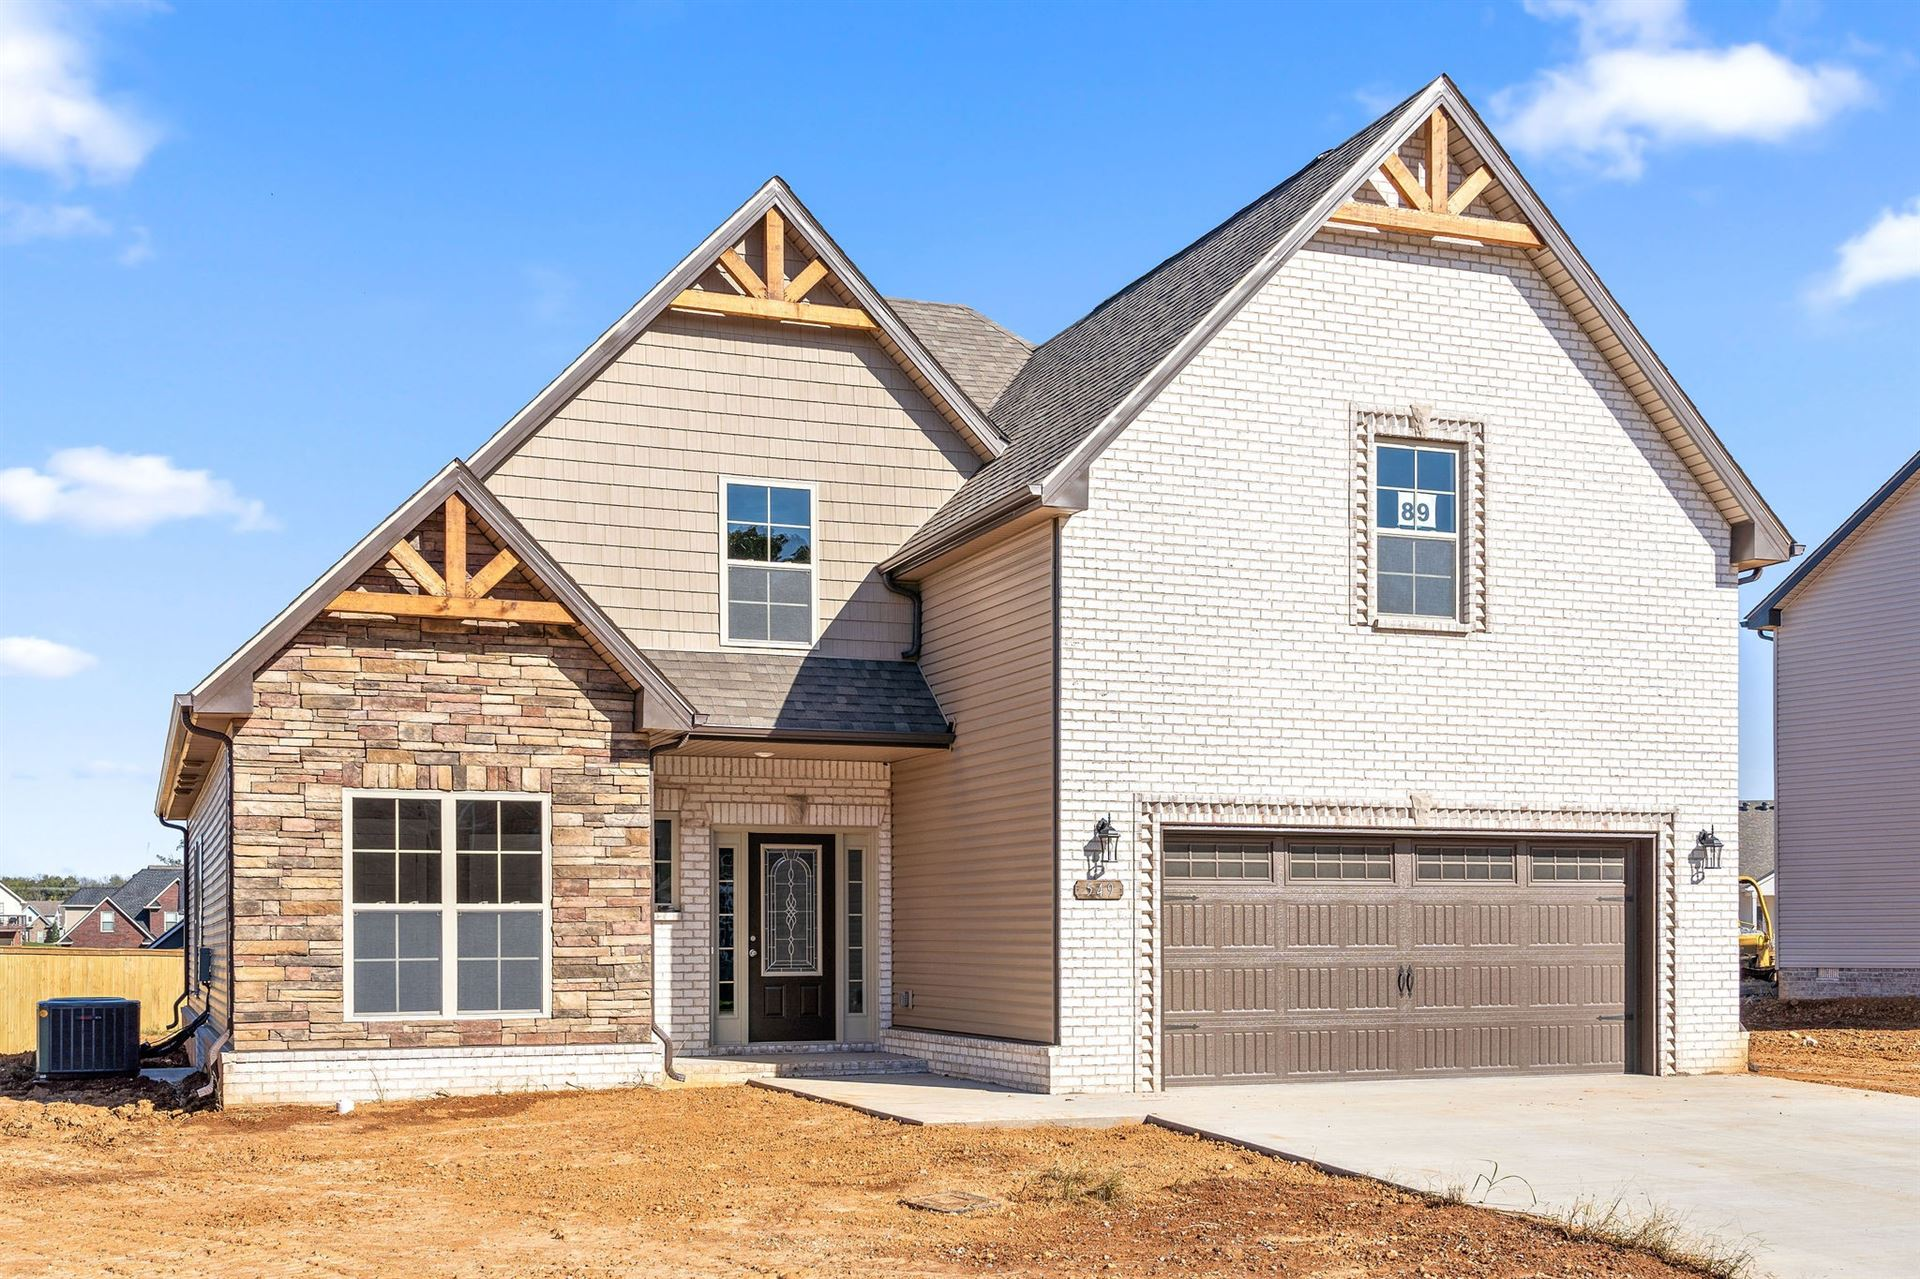 89 Reserve at Hickory Wild, Clarksville, TN 37043 - MLS#: 2185567